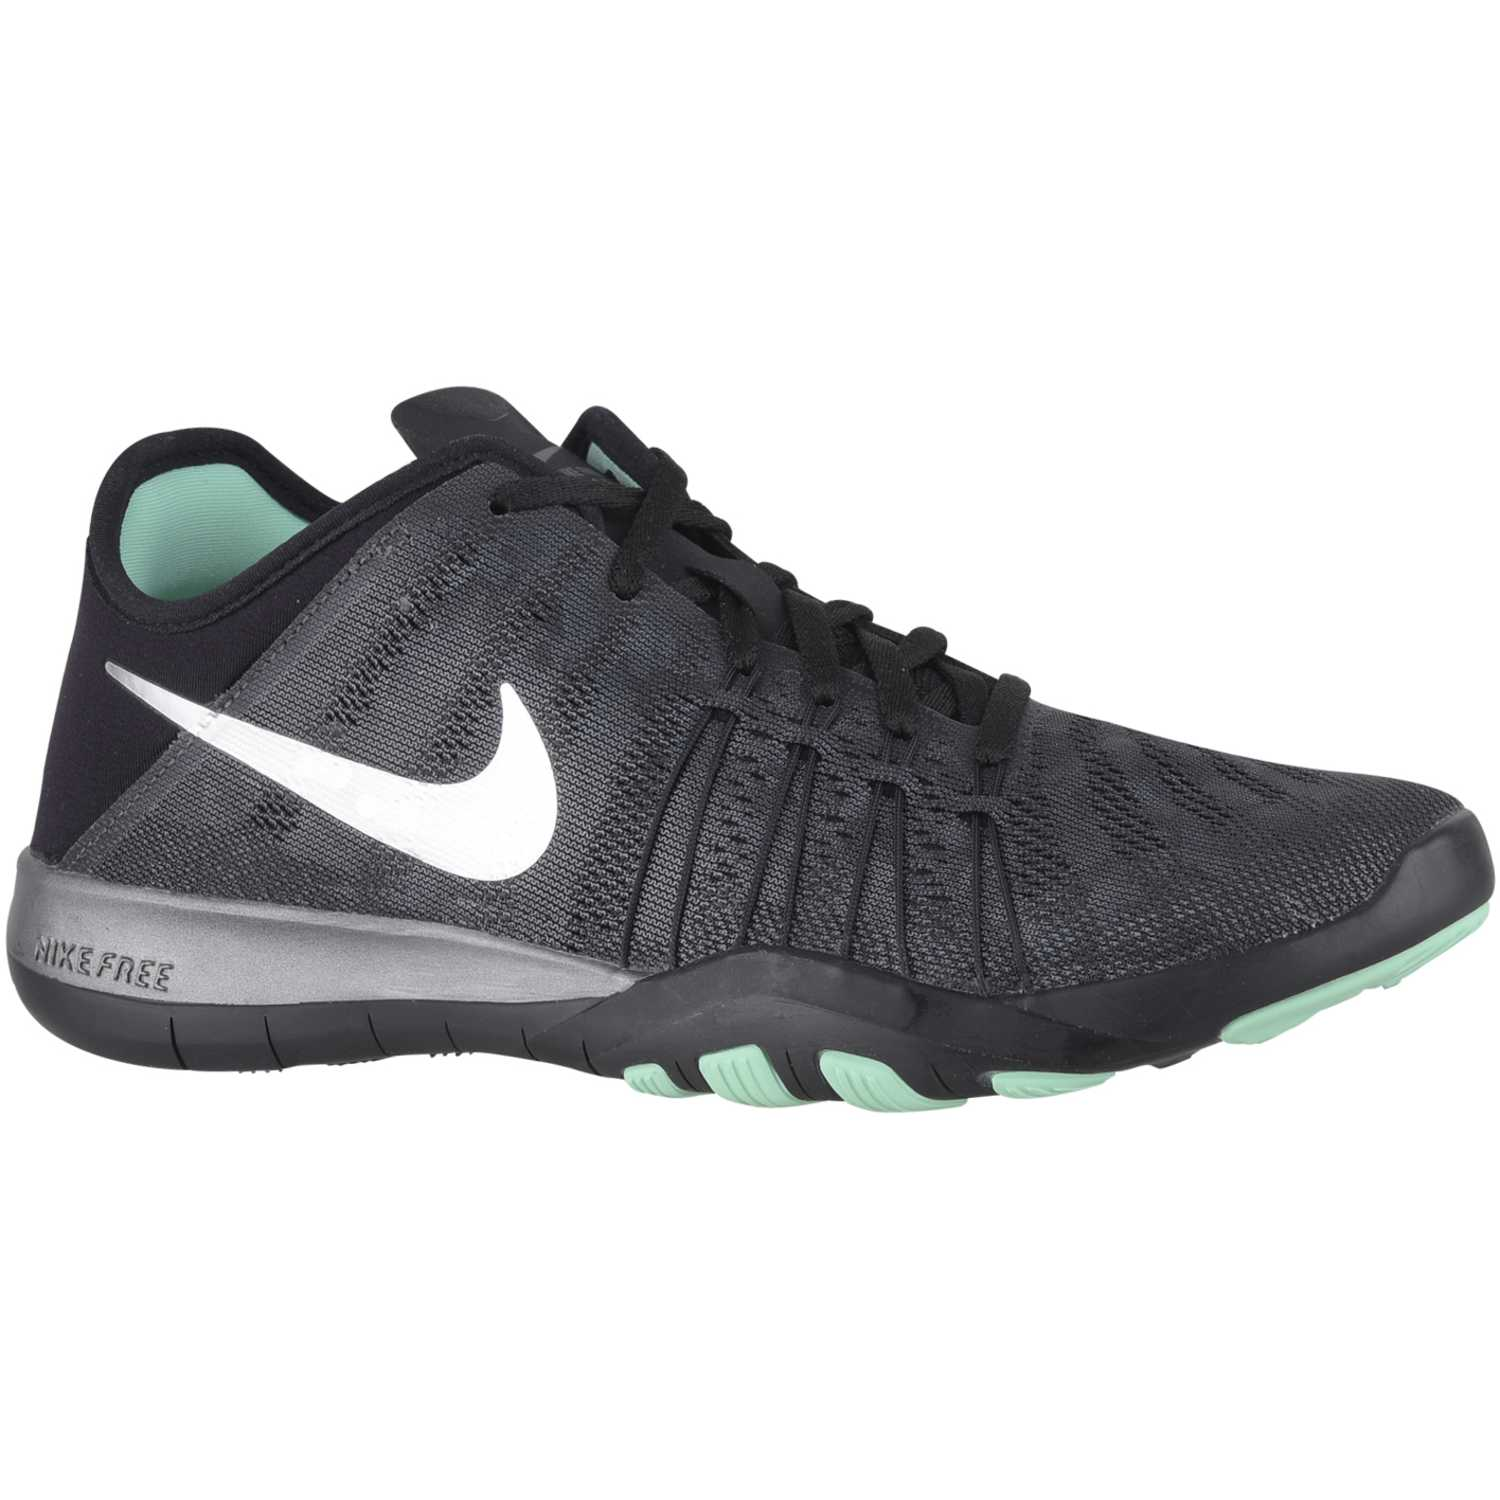 Casual de Mujer Nike Gris oscuro wmns free tr 6 mtlc